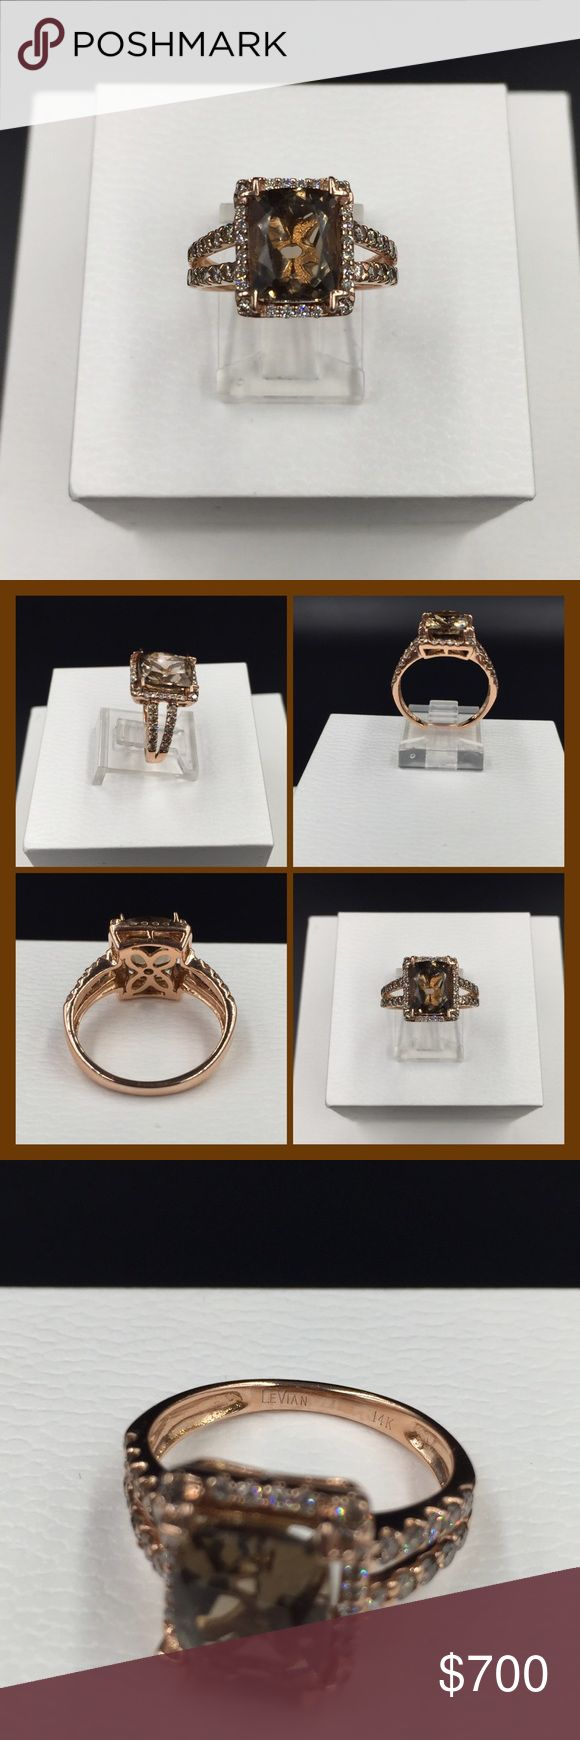 LeVian Diamond & Topaz Ring LeVian Chocolate Diamond & smoky topaz ring, size 6.75.  Diamond weight is 1/2 ct. Cushion cut smoky topaz measures 10mm x 8mm. 14K rose gold. Excellent condition. Original paperwork not available. No trades or off Poshmark transactions. Thanks and happy Poshing!! LeVian Jewelry Rings